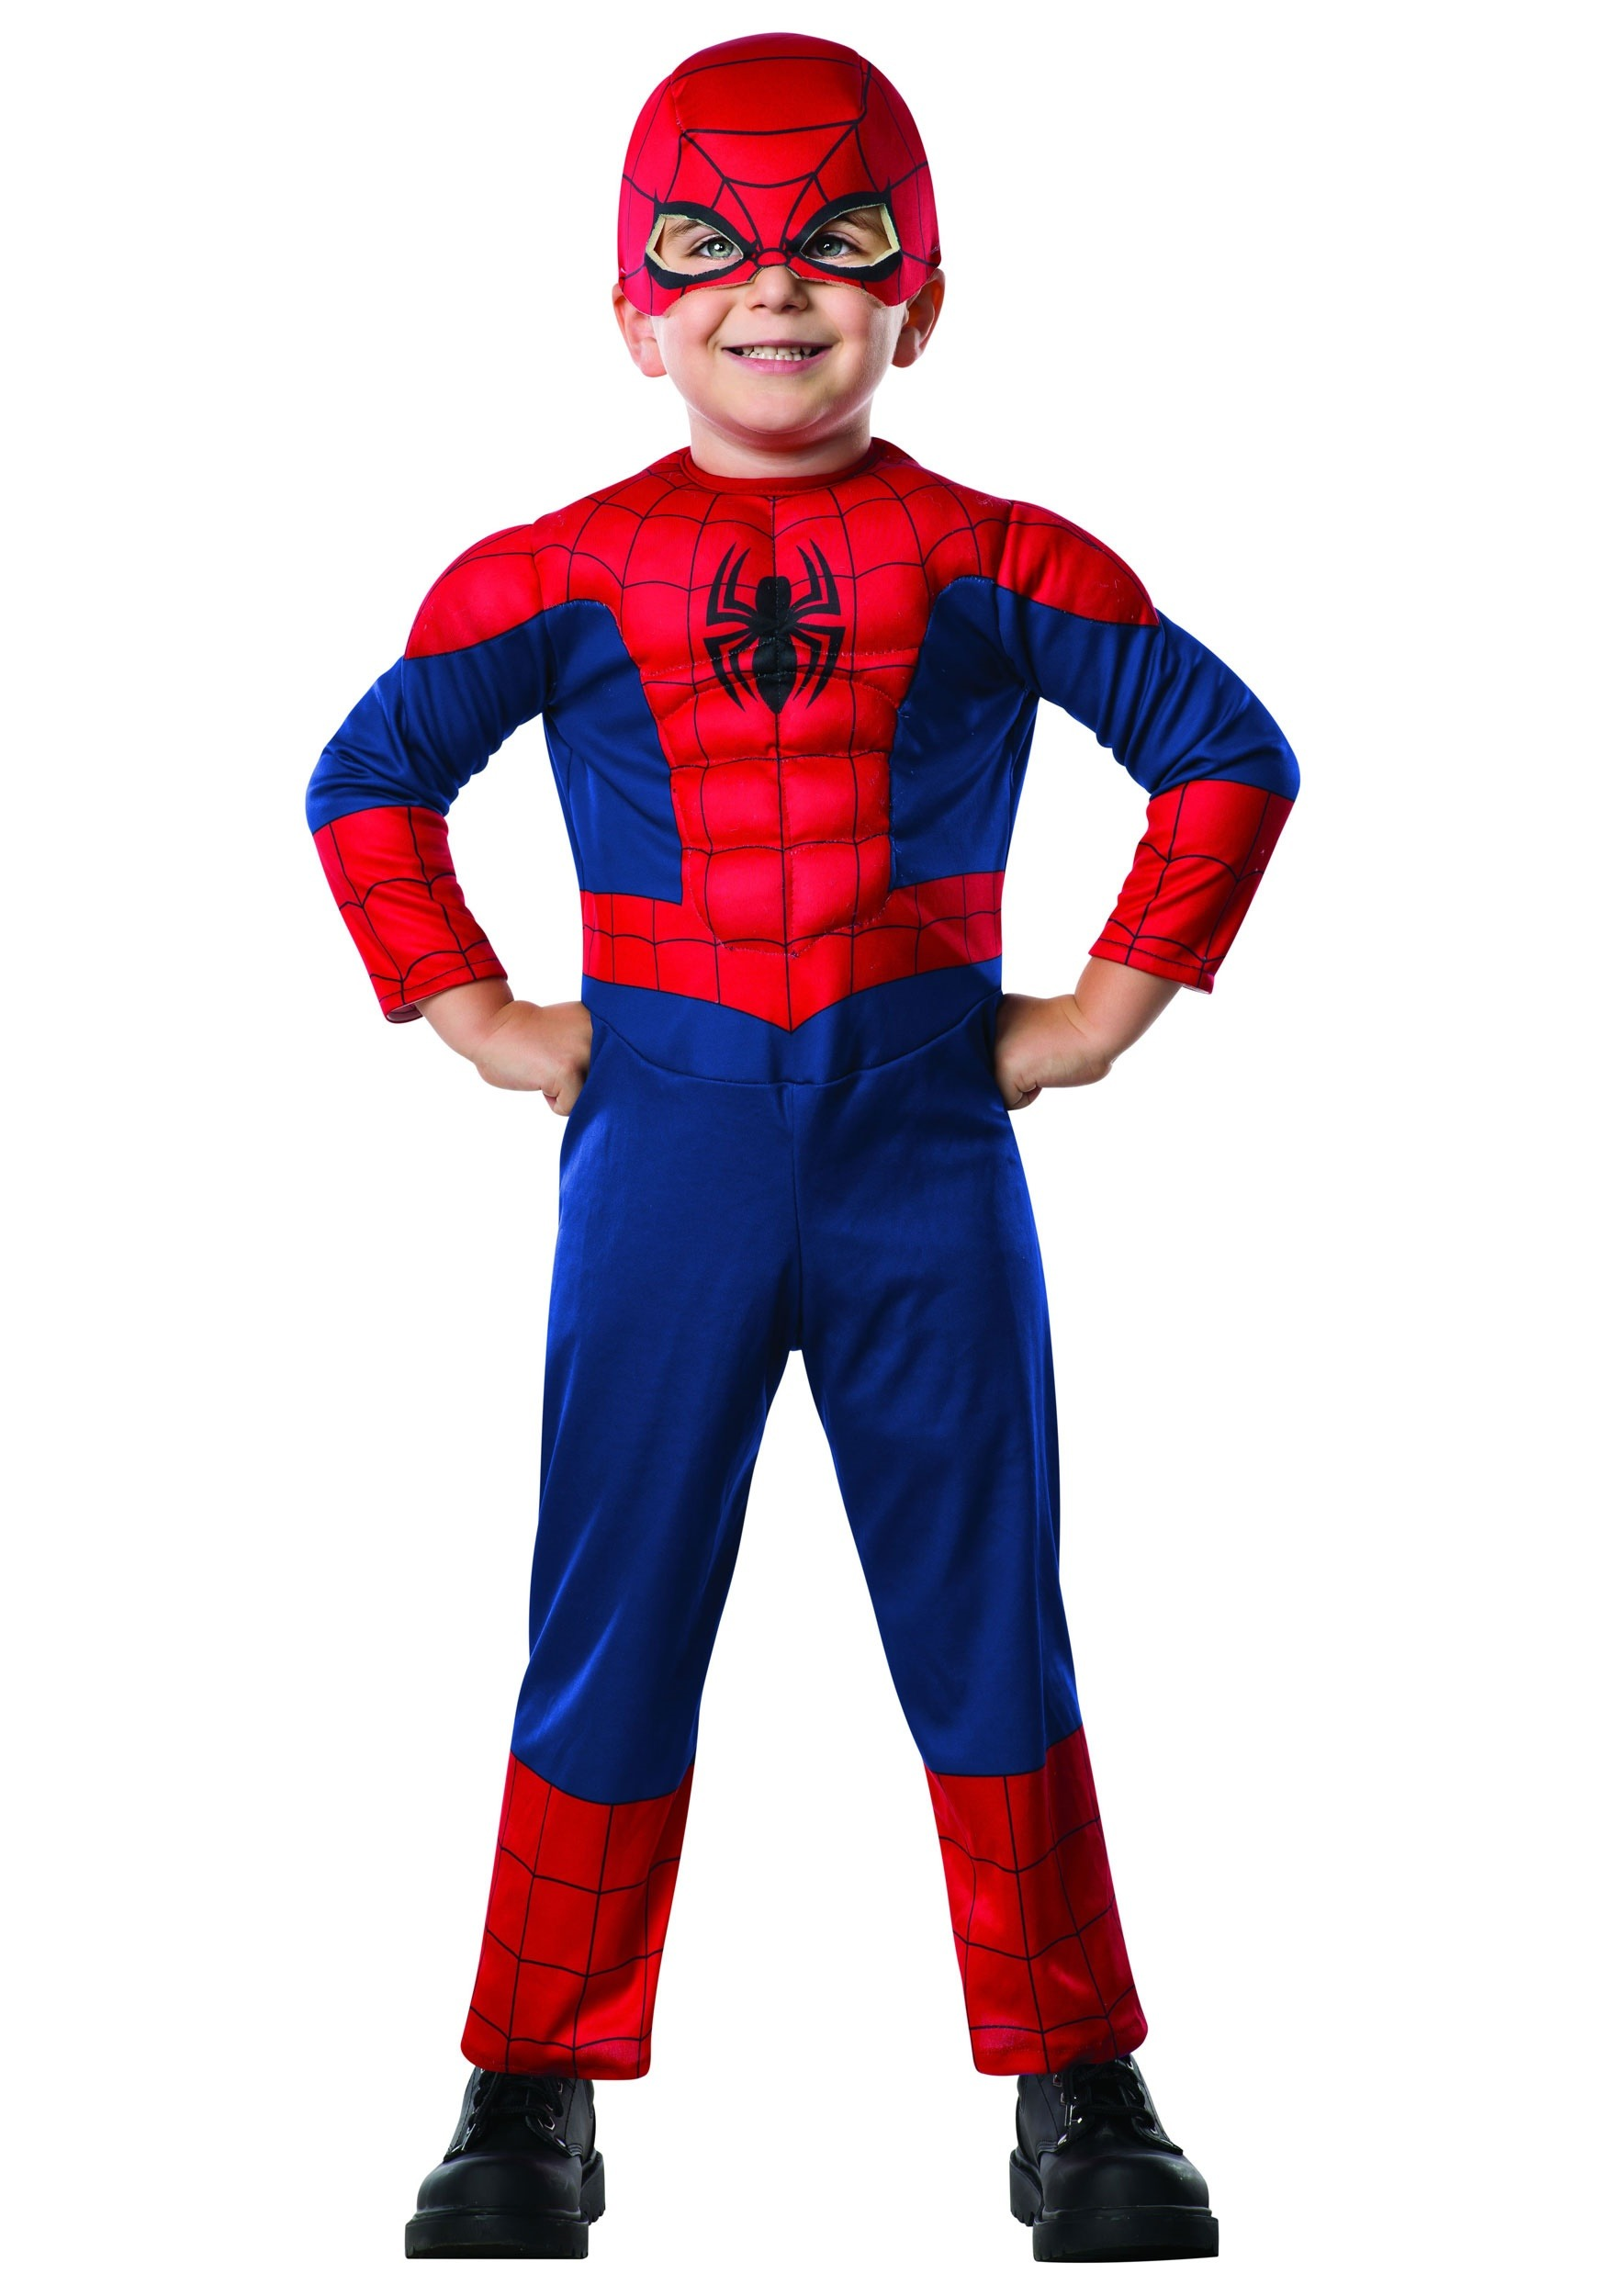 Spider-Man Toddler Costume RU620009